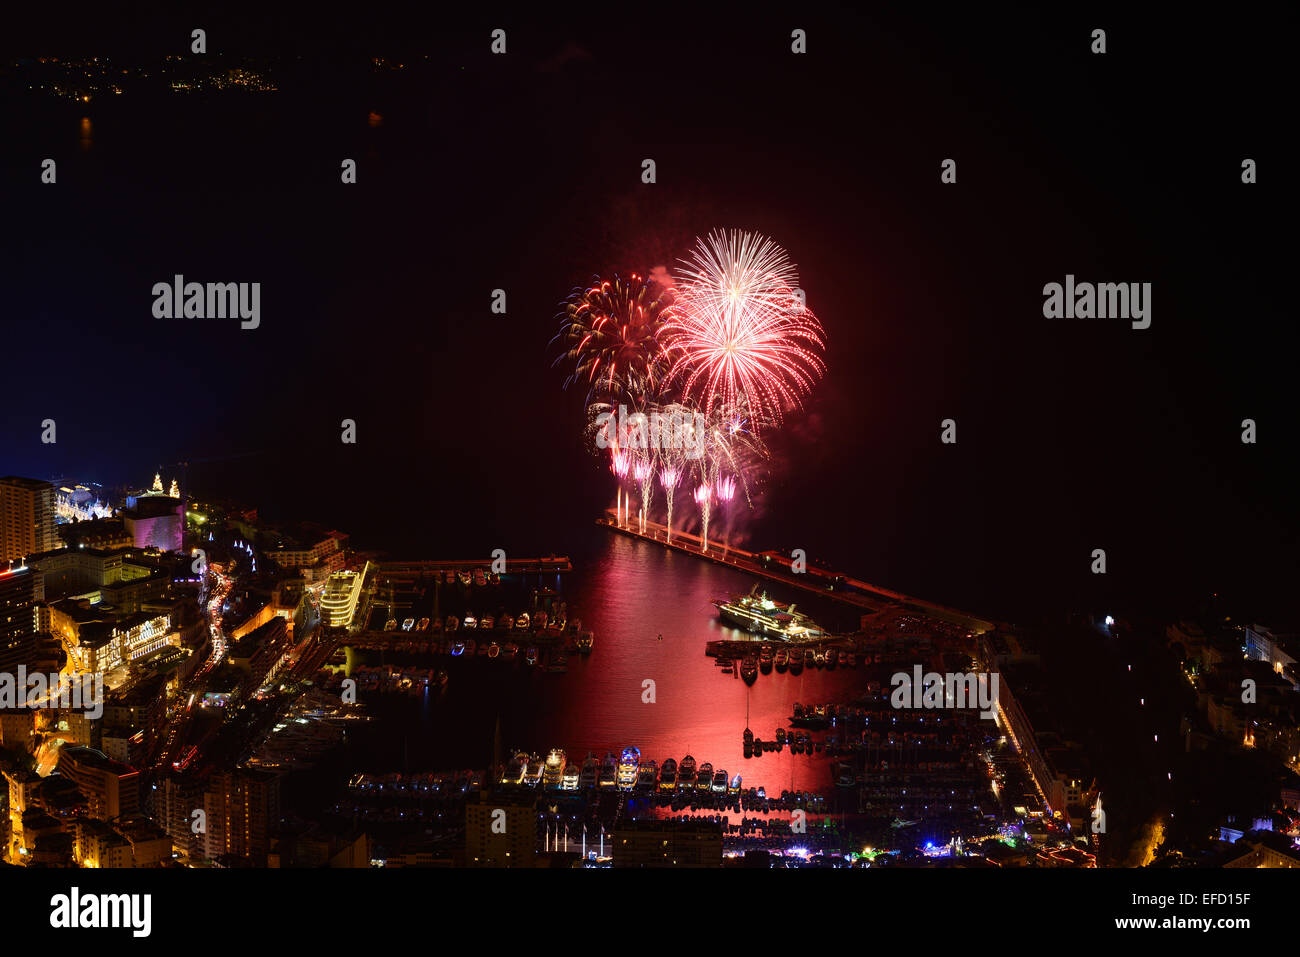 NEW YEAR'S EVE FIREWORKS in Port Hercule in the Principality of Monaco - Stock Image